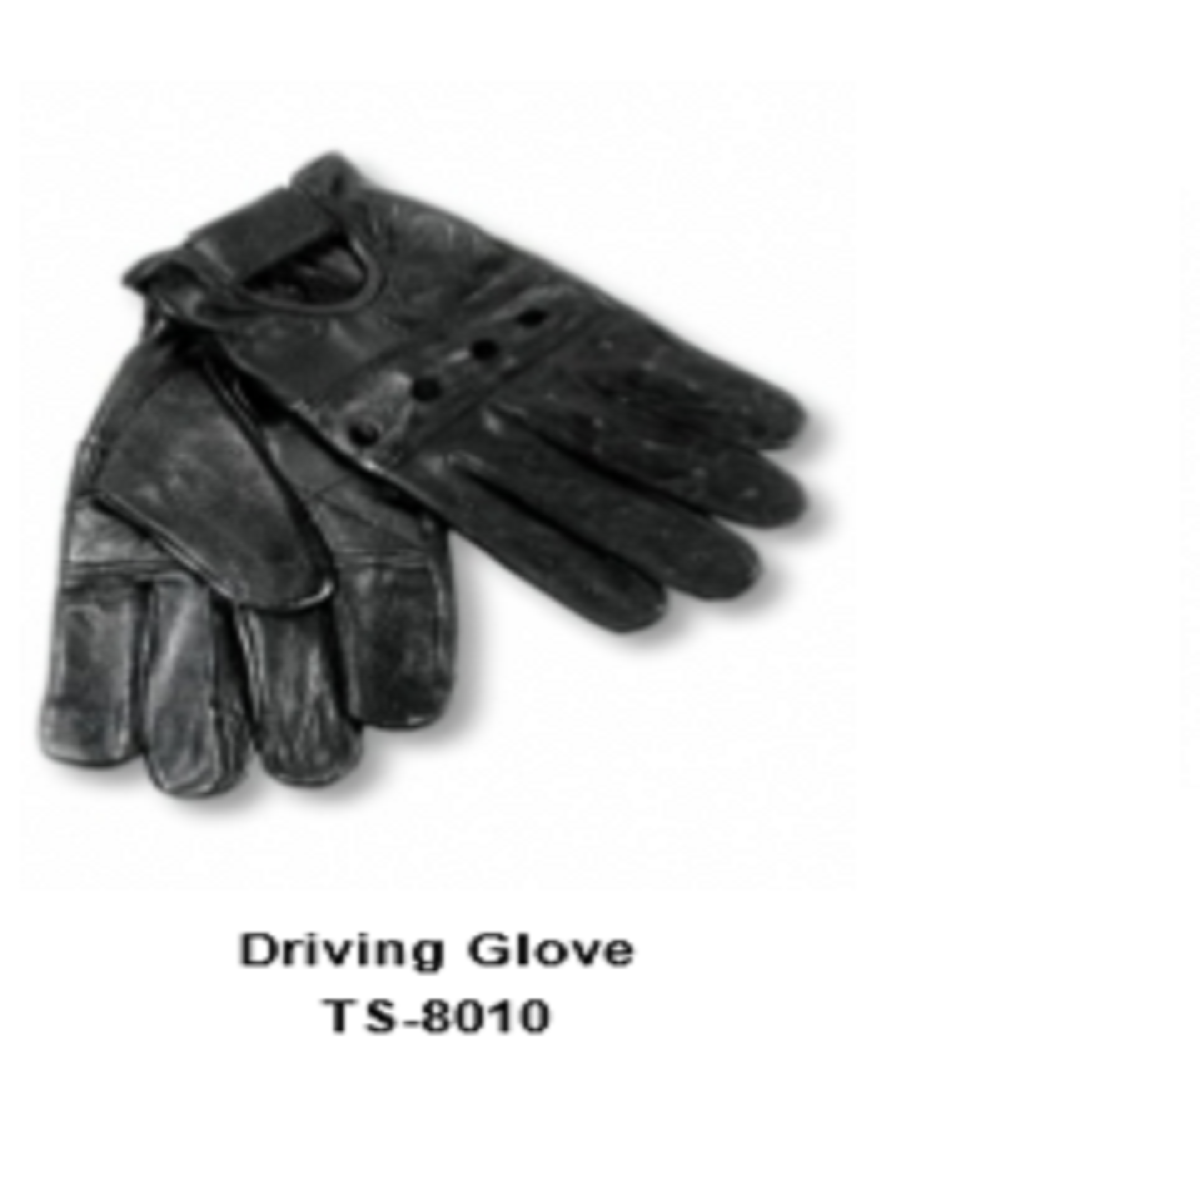 Leather Men's Fashion Driving Gloves Model No. TSI 8010